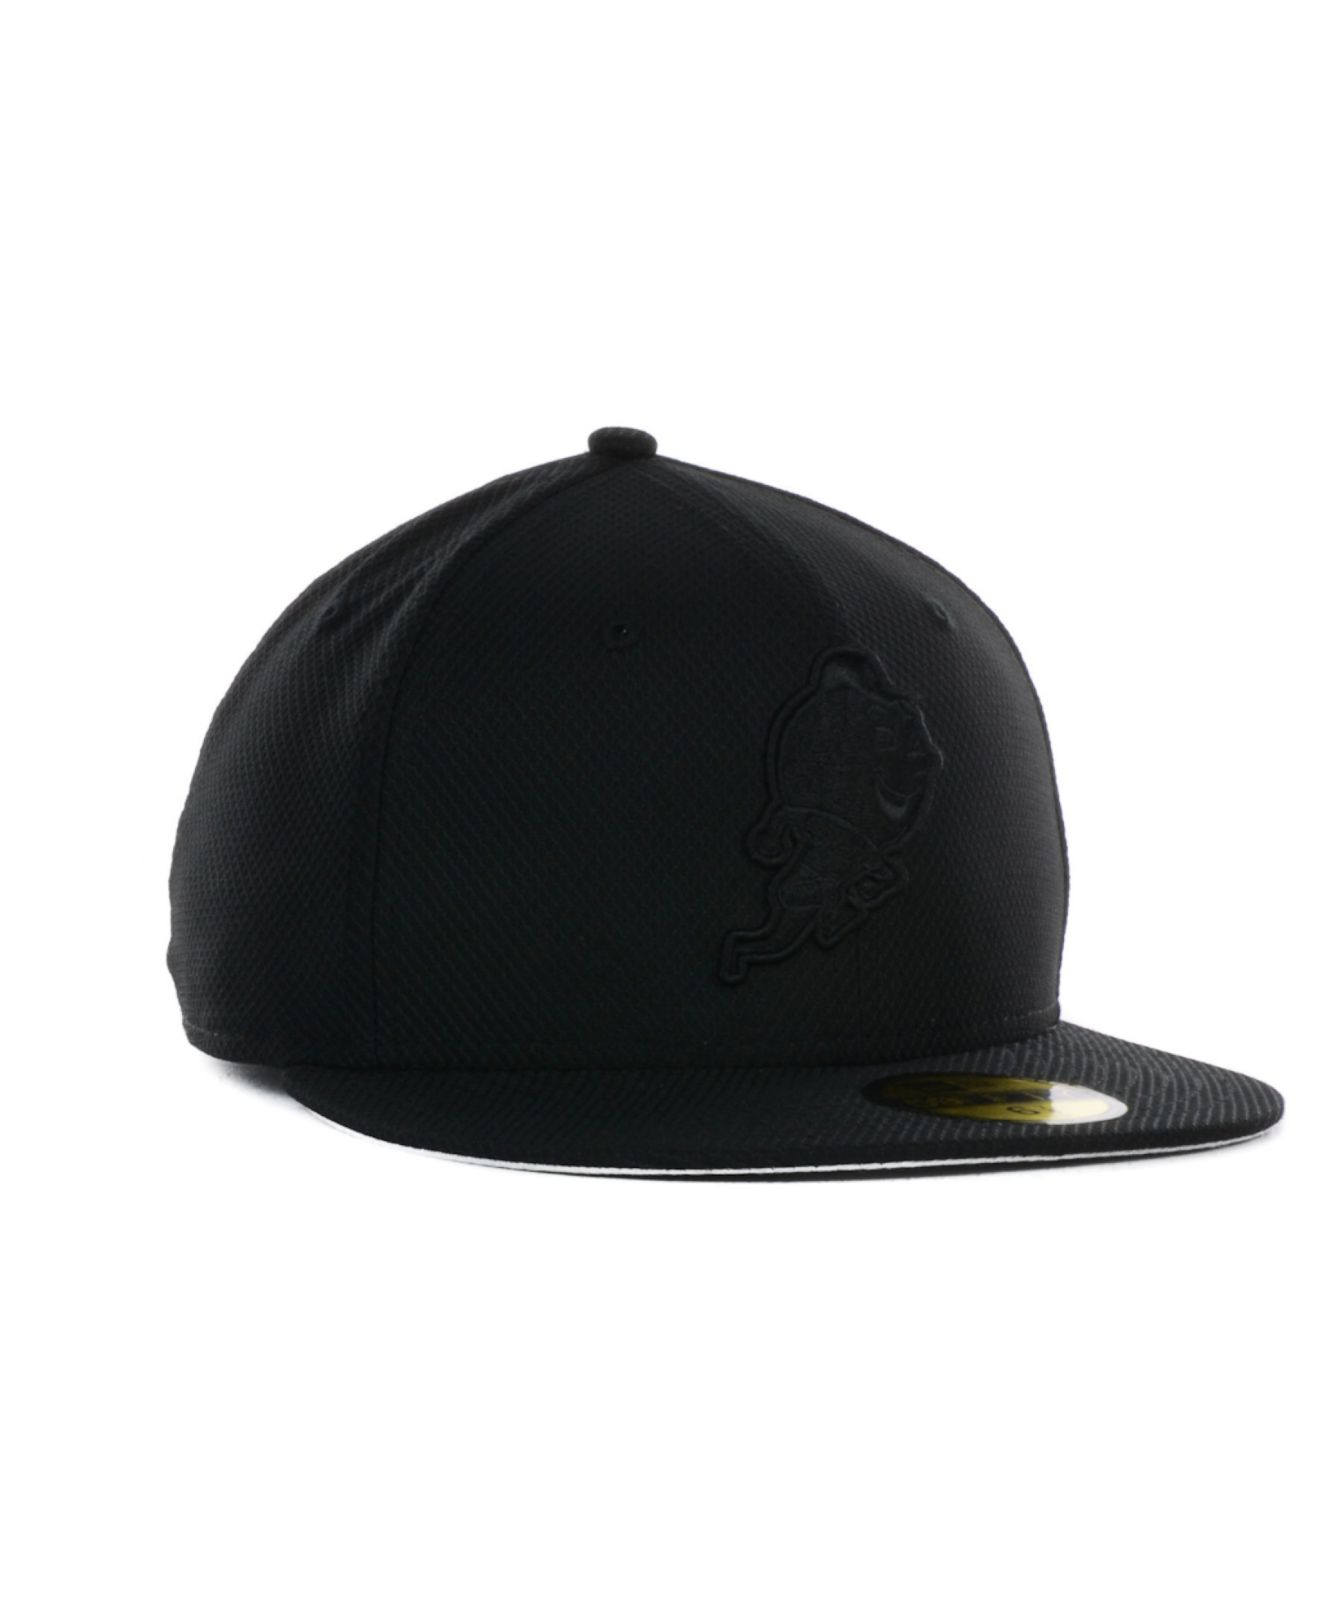 Lyst - Ktz New York Yankees Black Diamond Era 39thirty Cap in Black ... f758889e59b3